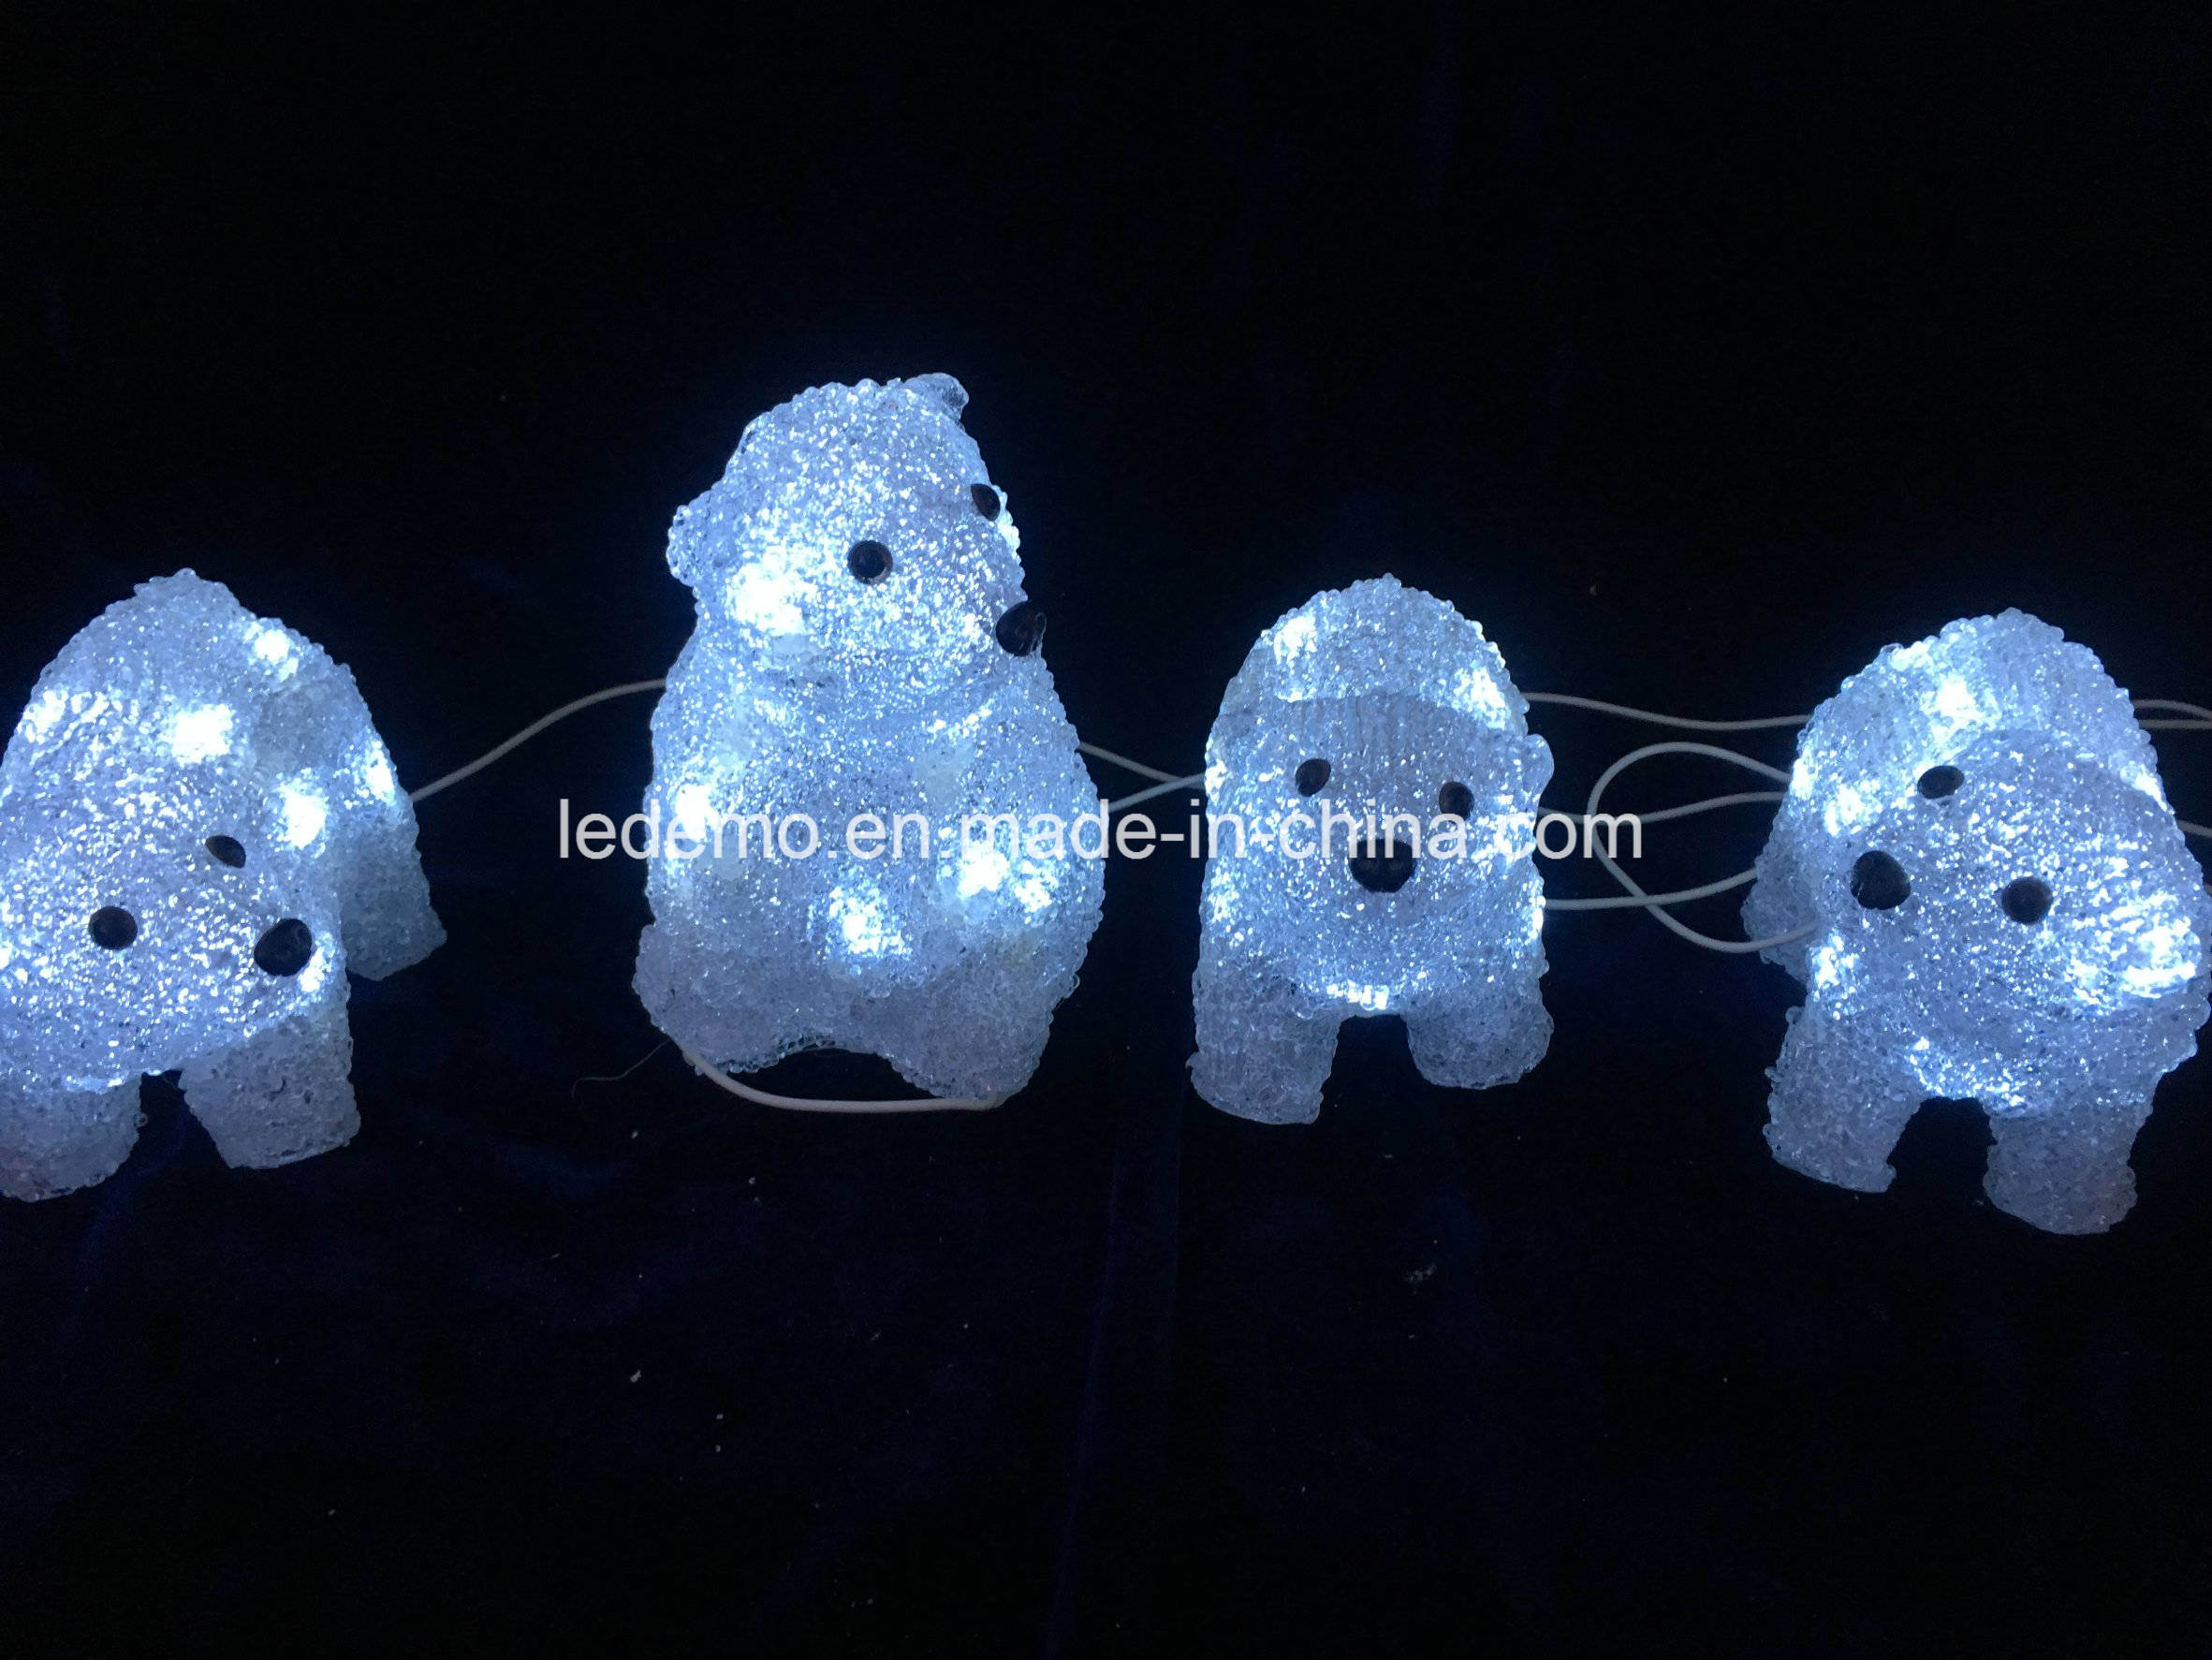 LED Acrylic Decorative USB Bear Light